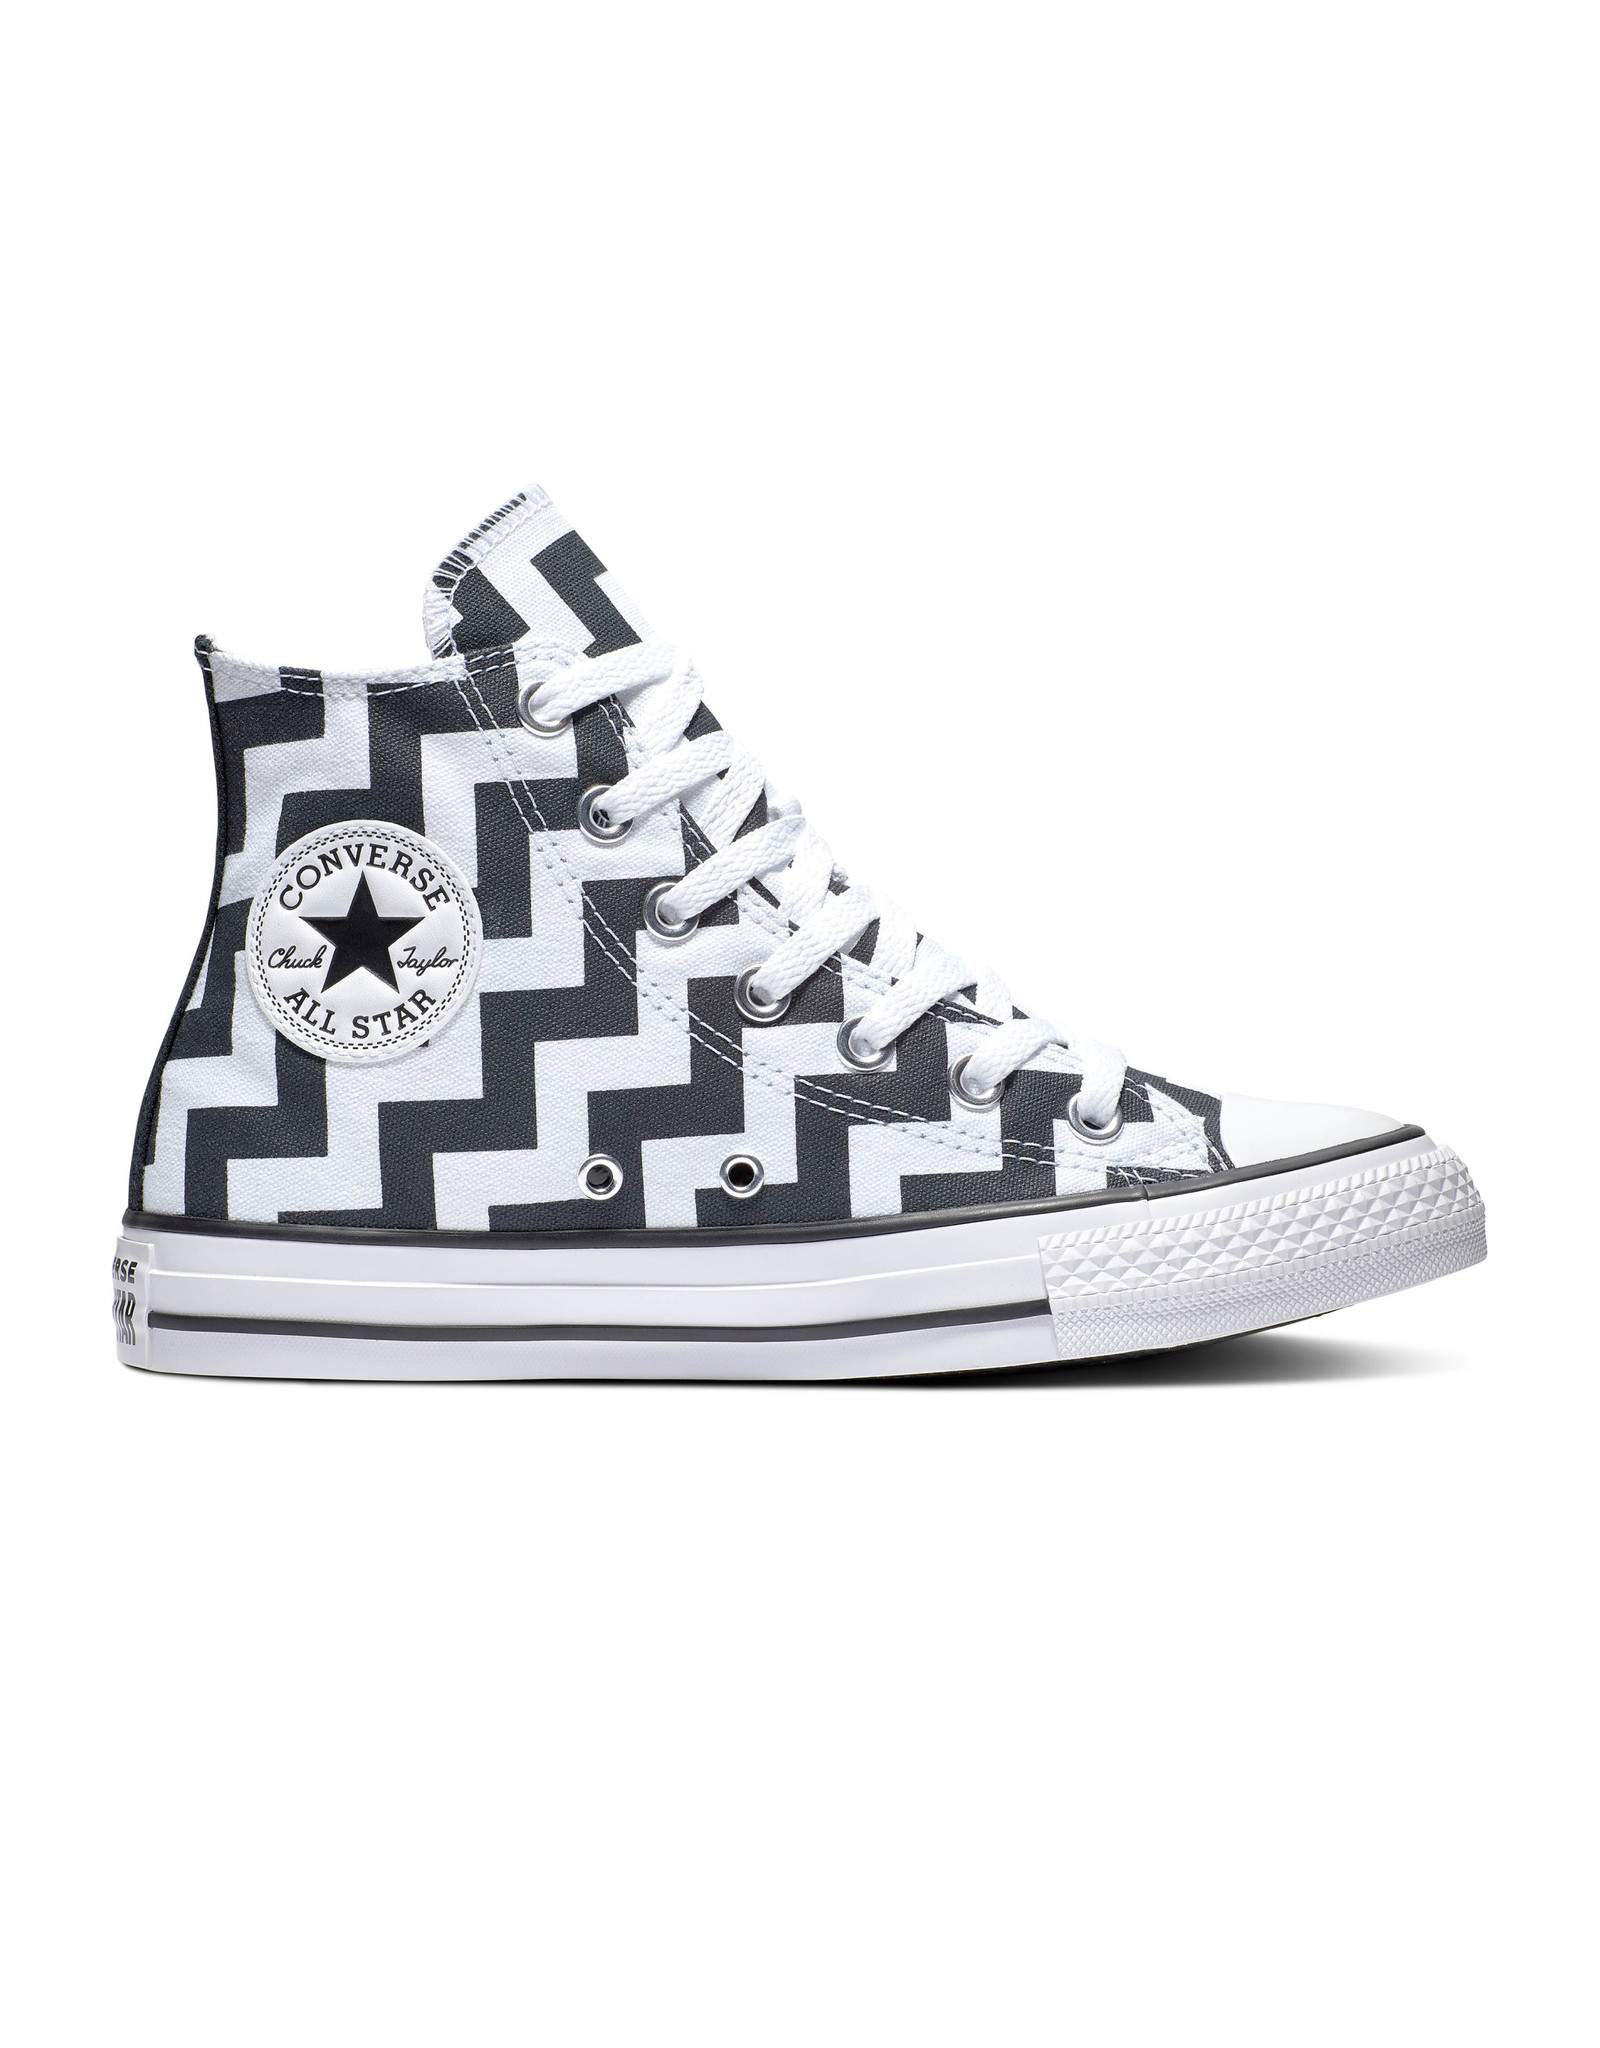 CONVERSE CHUCK TAYLOR ALL STAR HI WHITE/BLACK/WHITE C19SAW-565213C